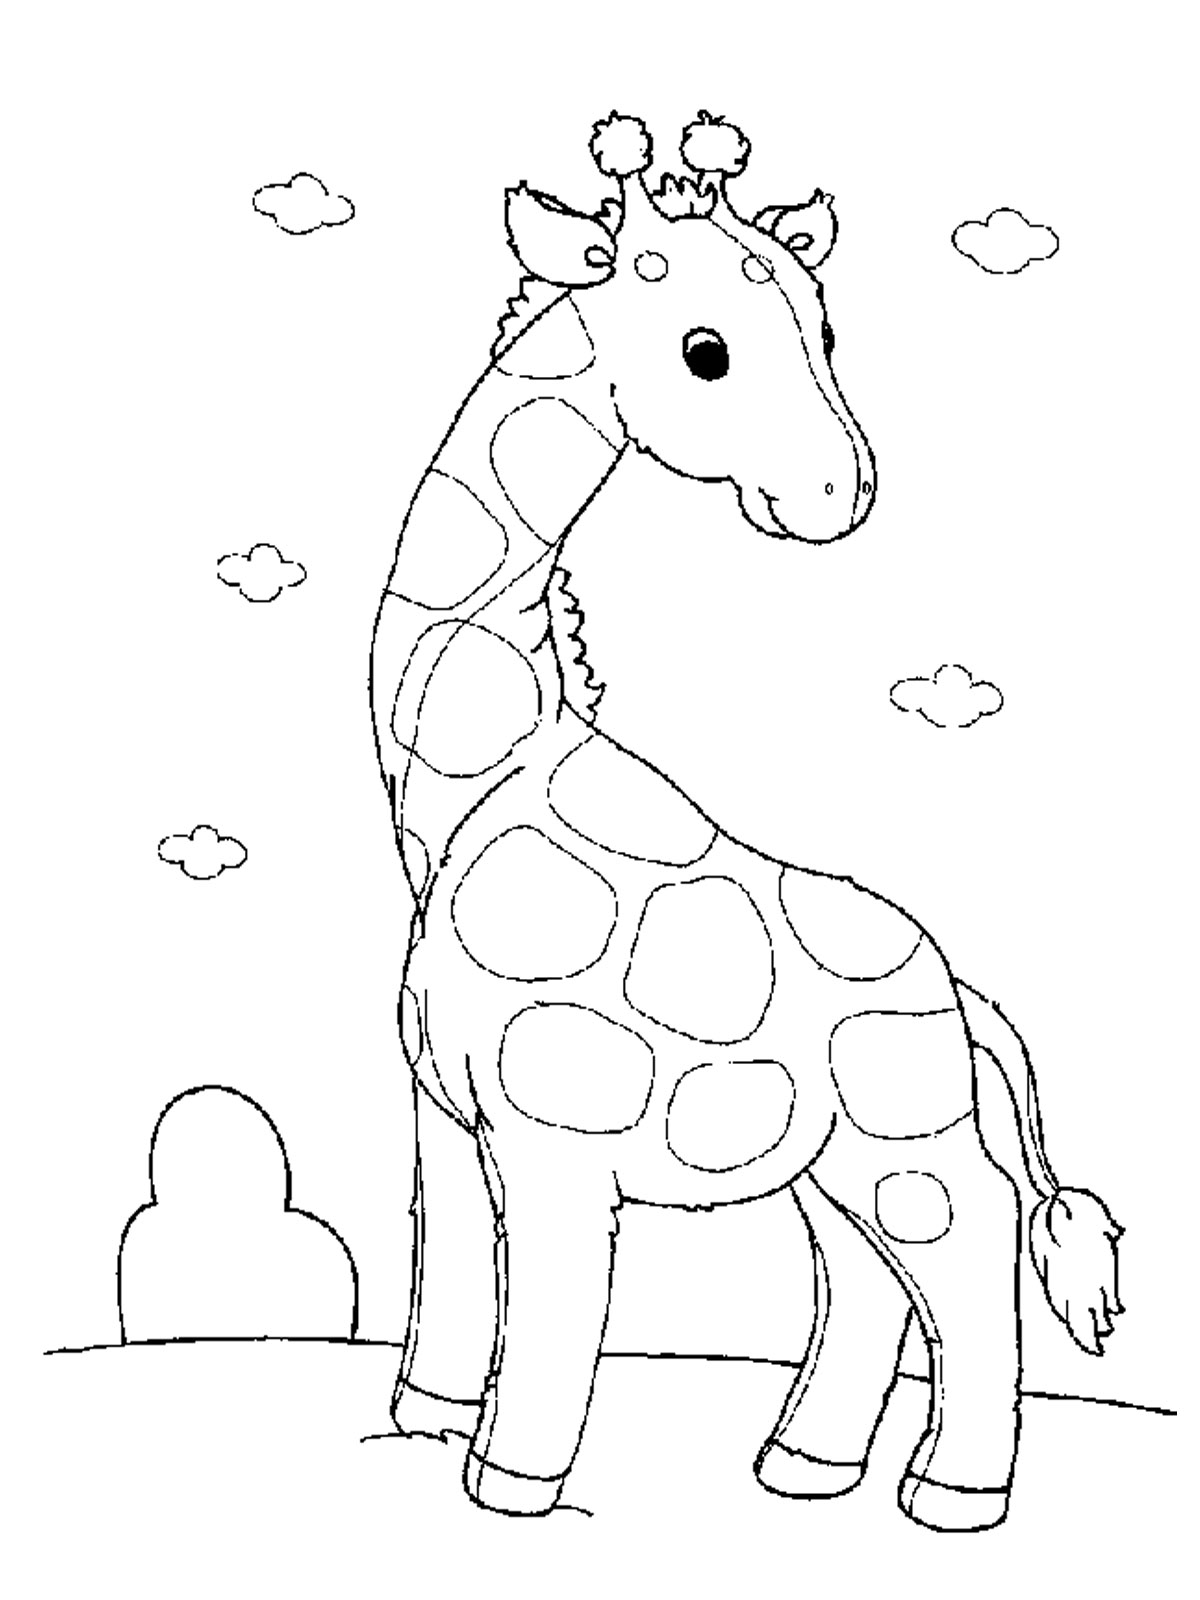 zoo animal coloring pages to print free printable giraffe coloring pages for kids to pages print zoo coloring animal